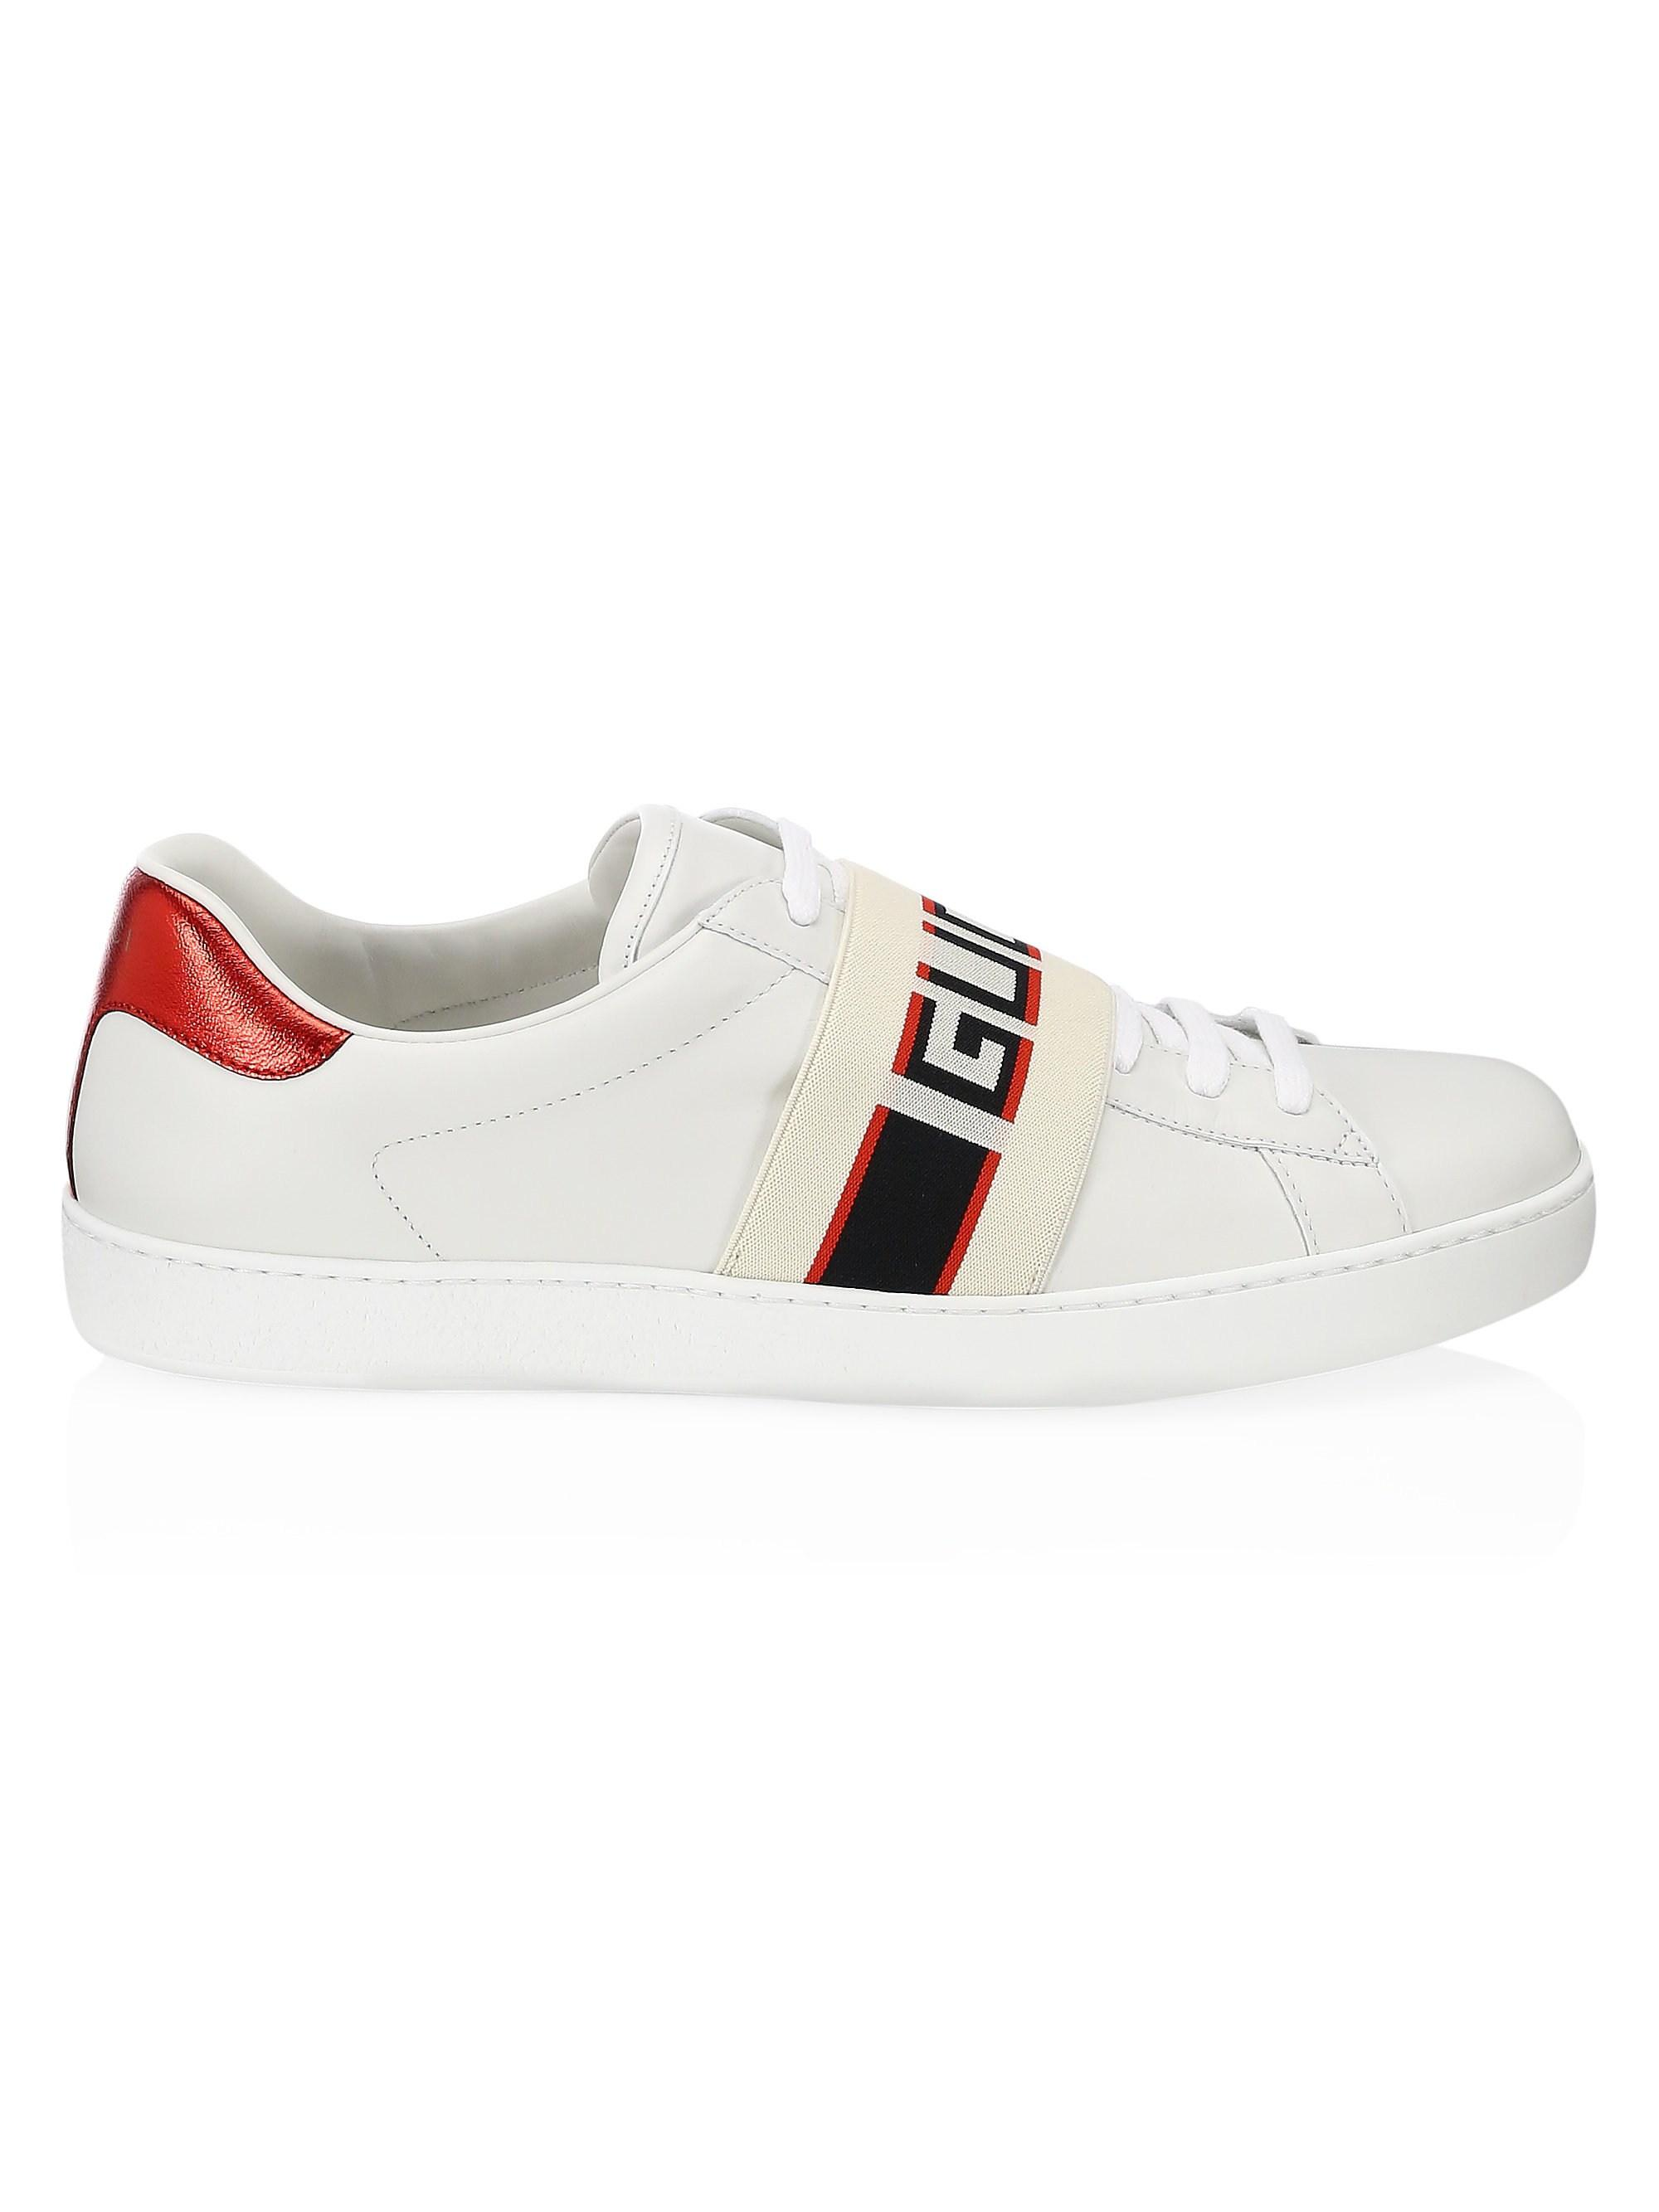 27942aafb0a Lyst - Gucci New Ace Stripe Leather Sneaker in White for Men